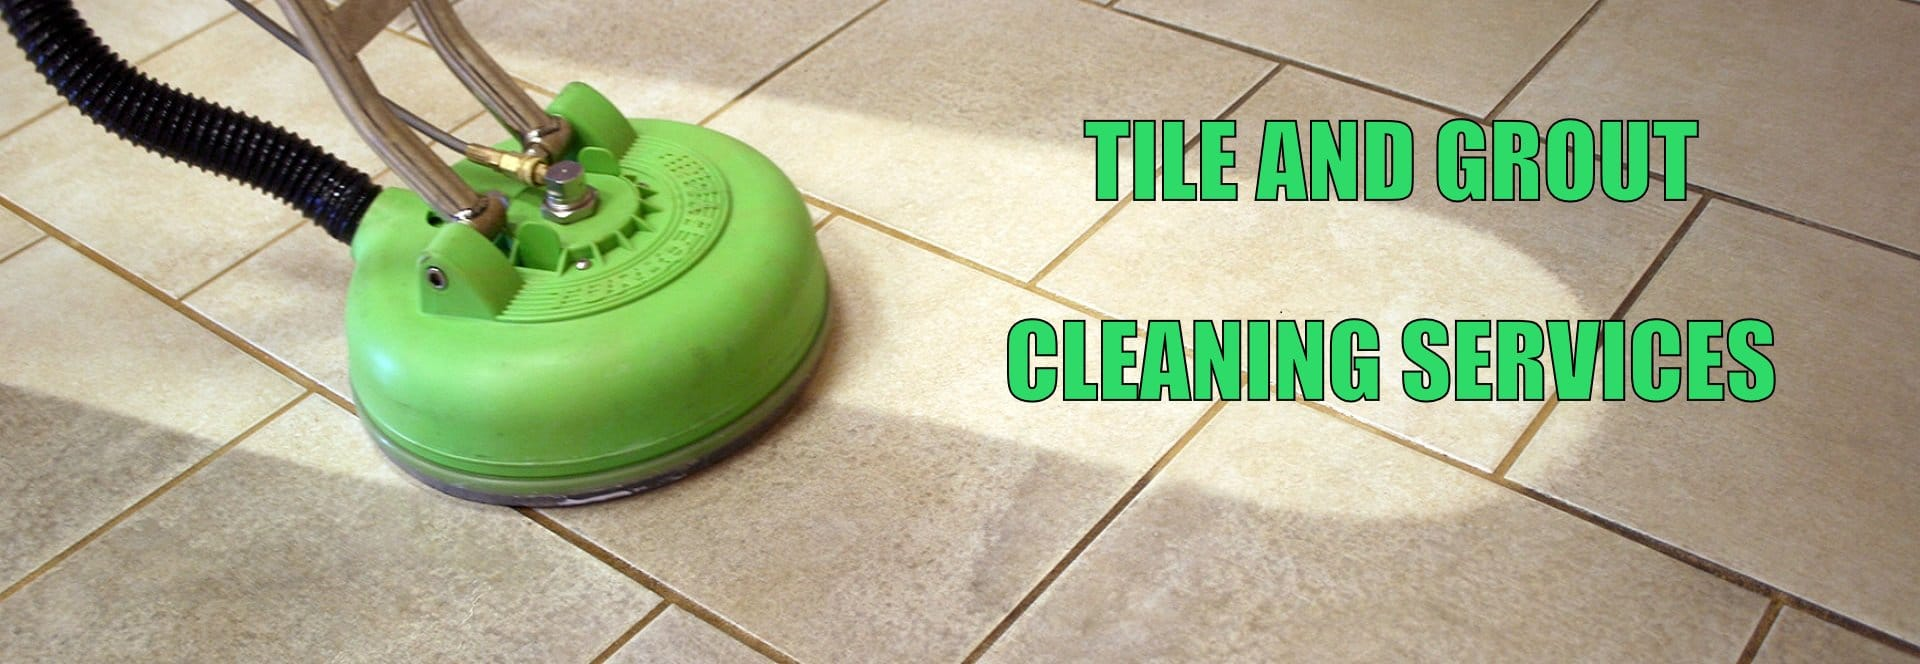 Tile and grout Cleaning Ottawa